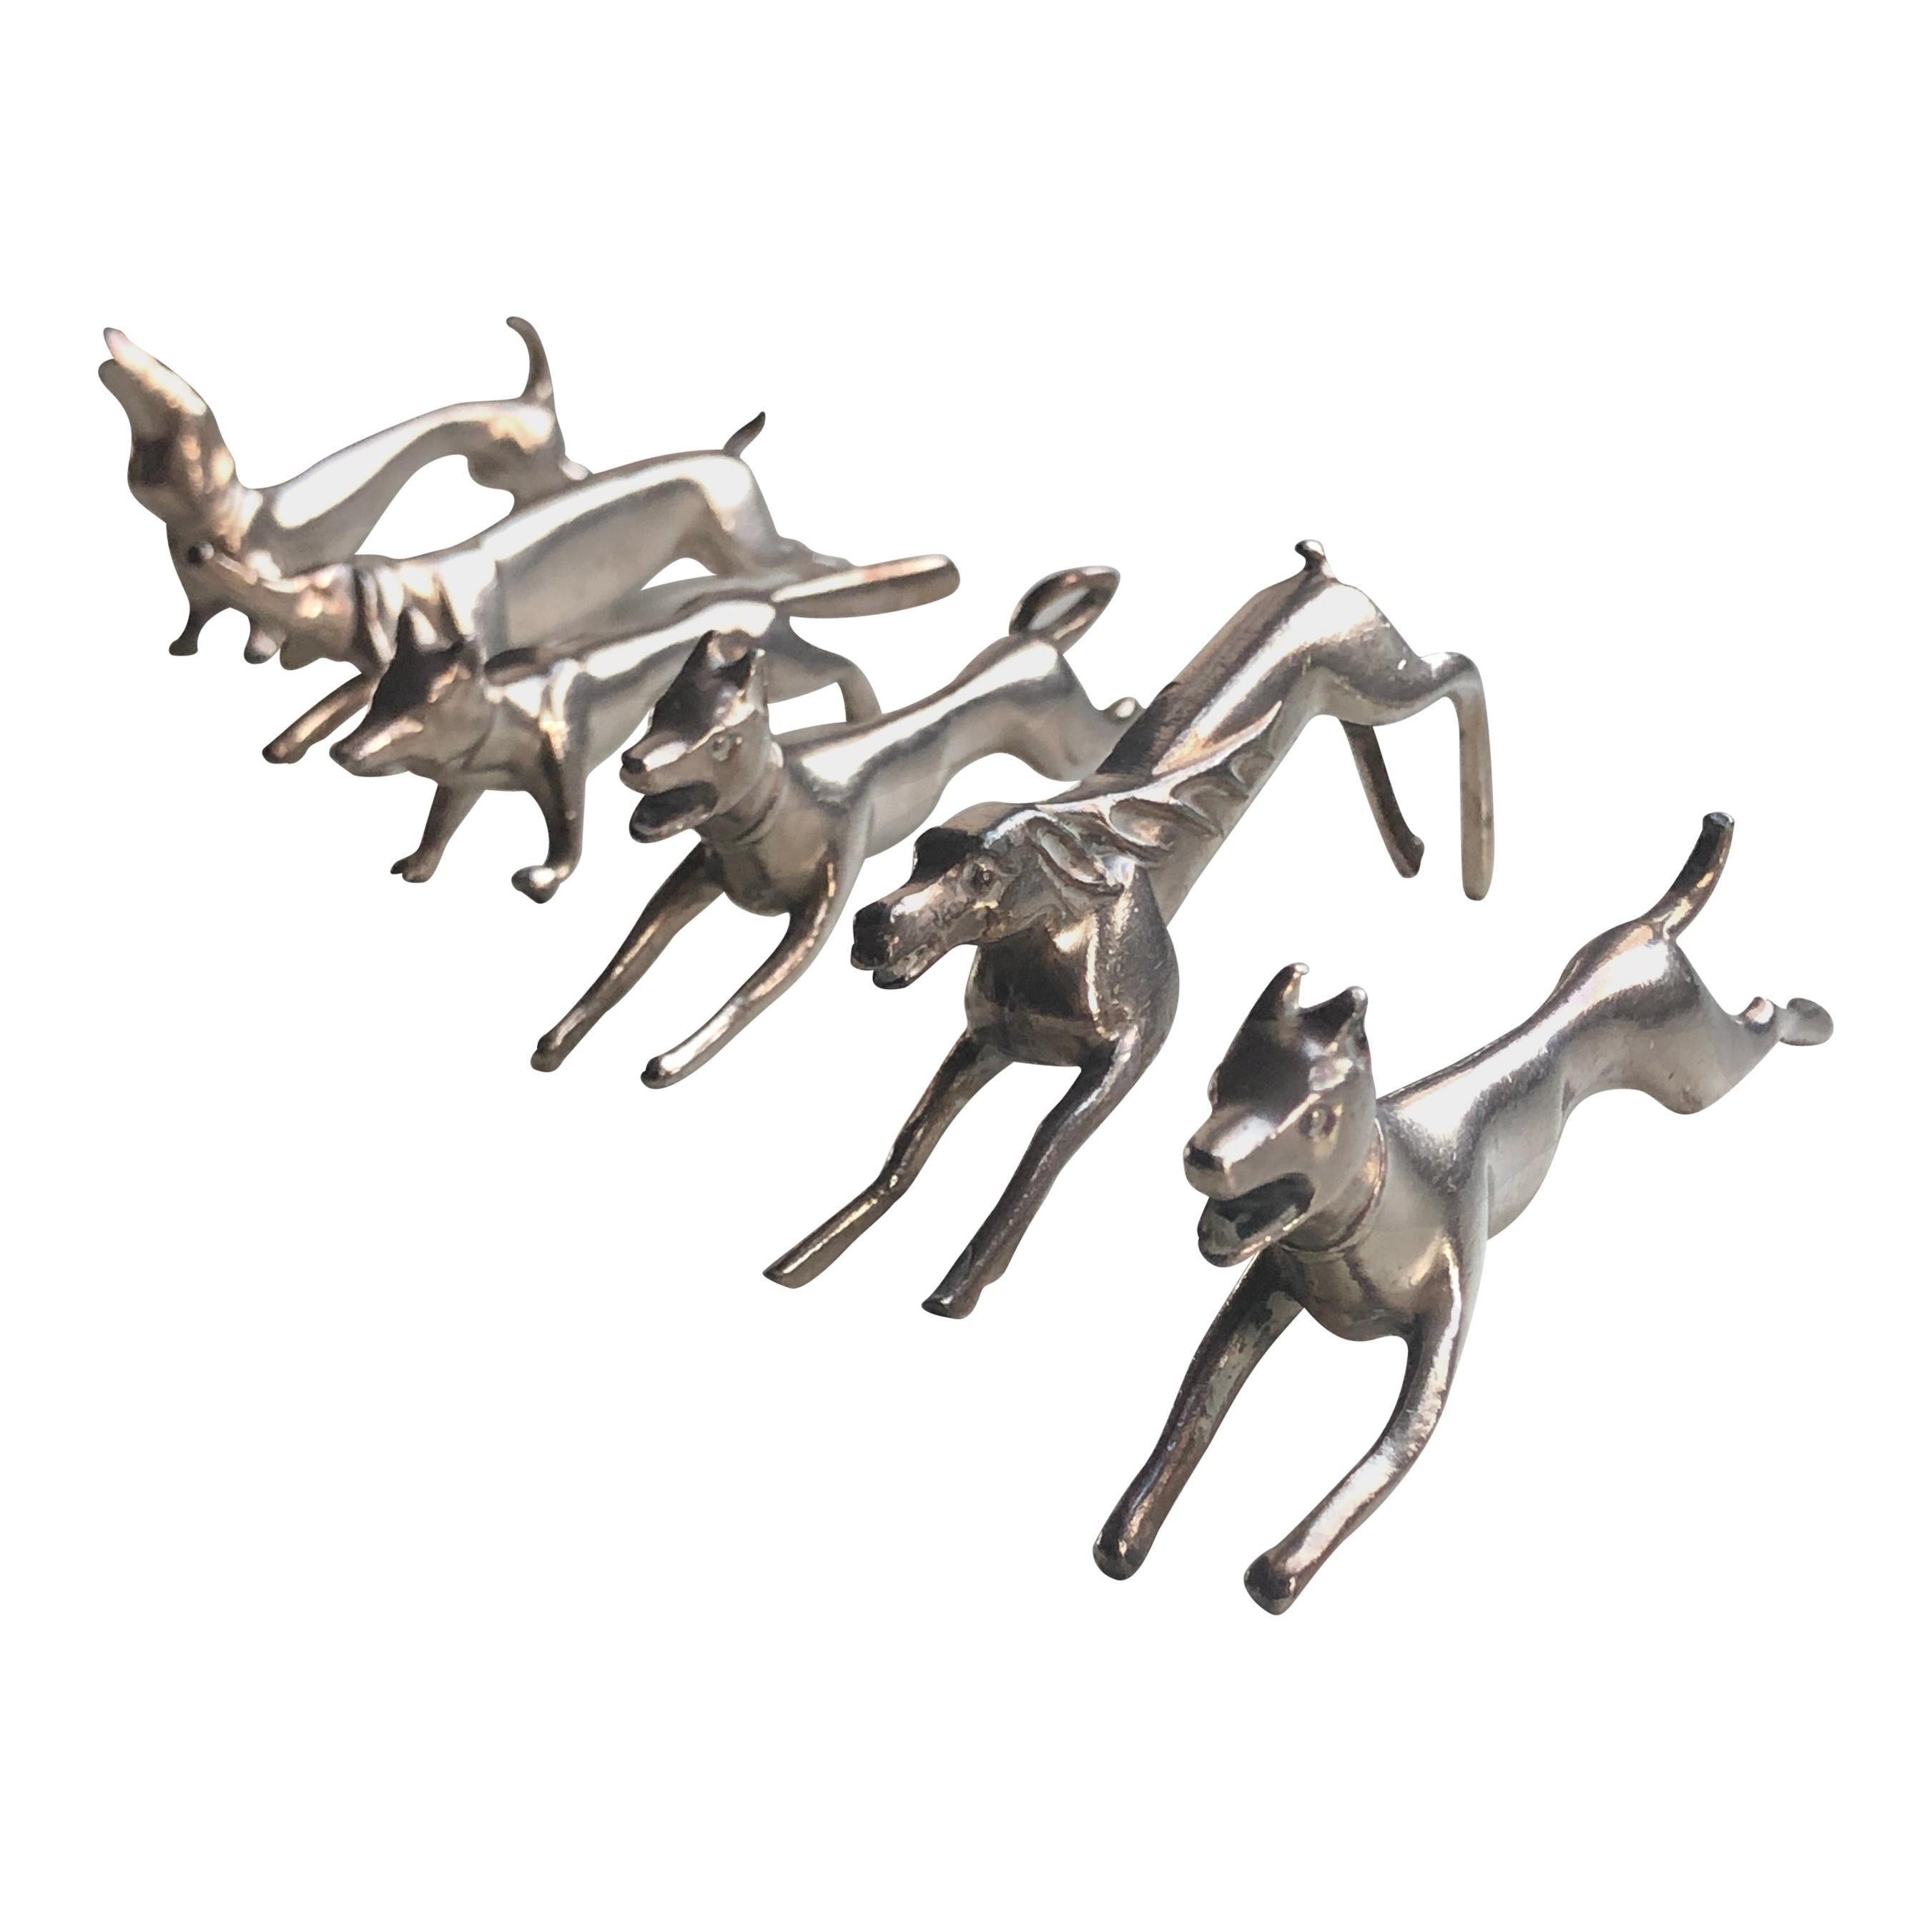 Set of Six Art Deco French Silver Plated Knife Rests Featuring Animal Figures